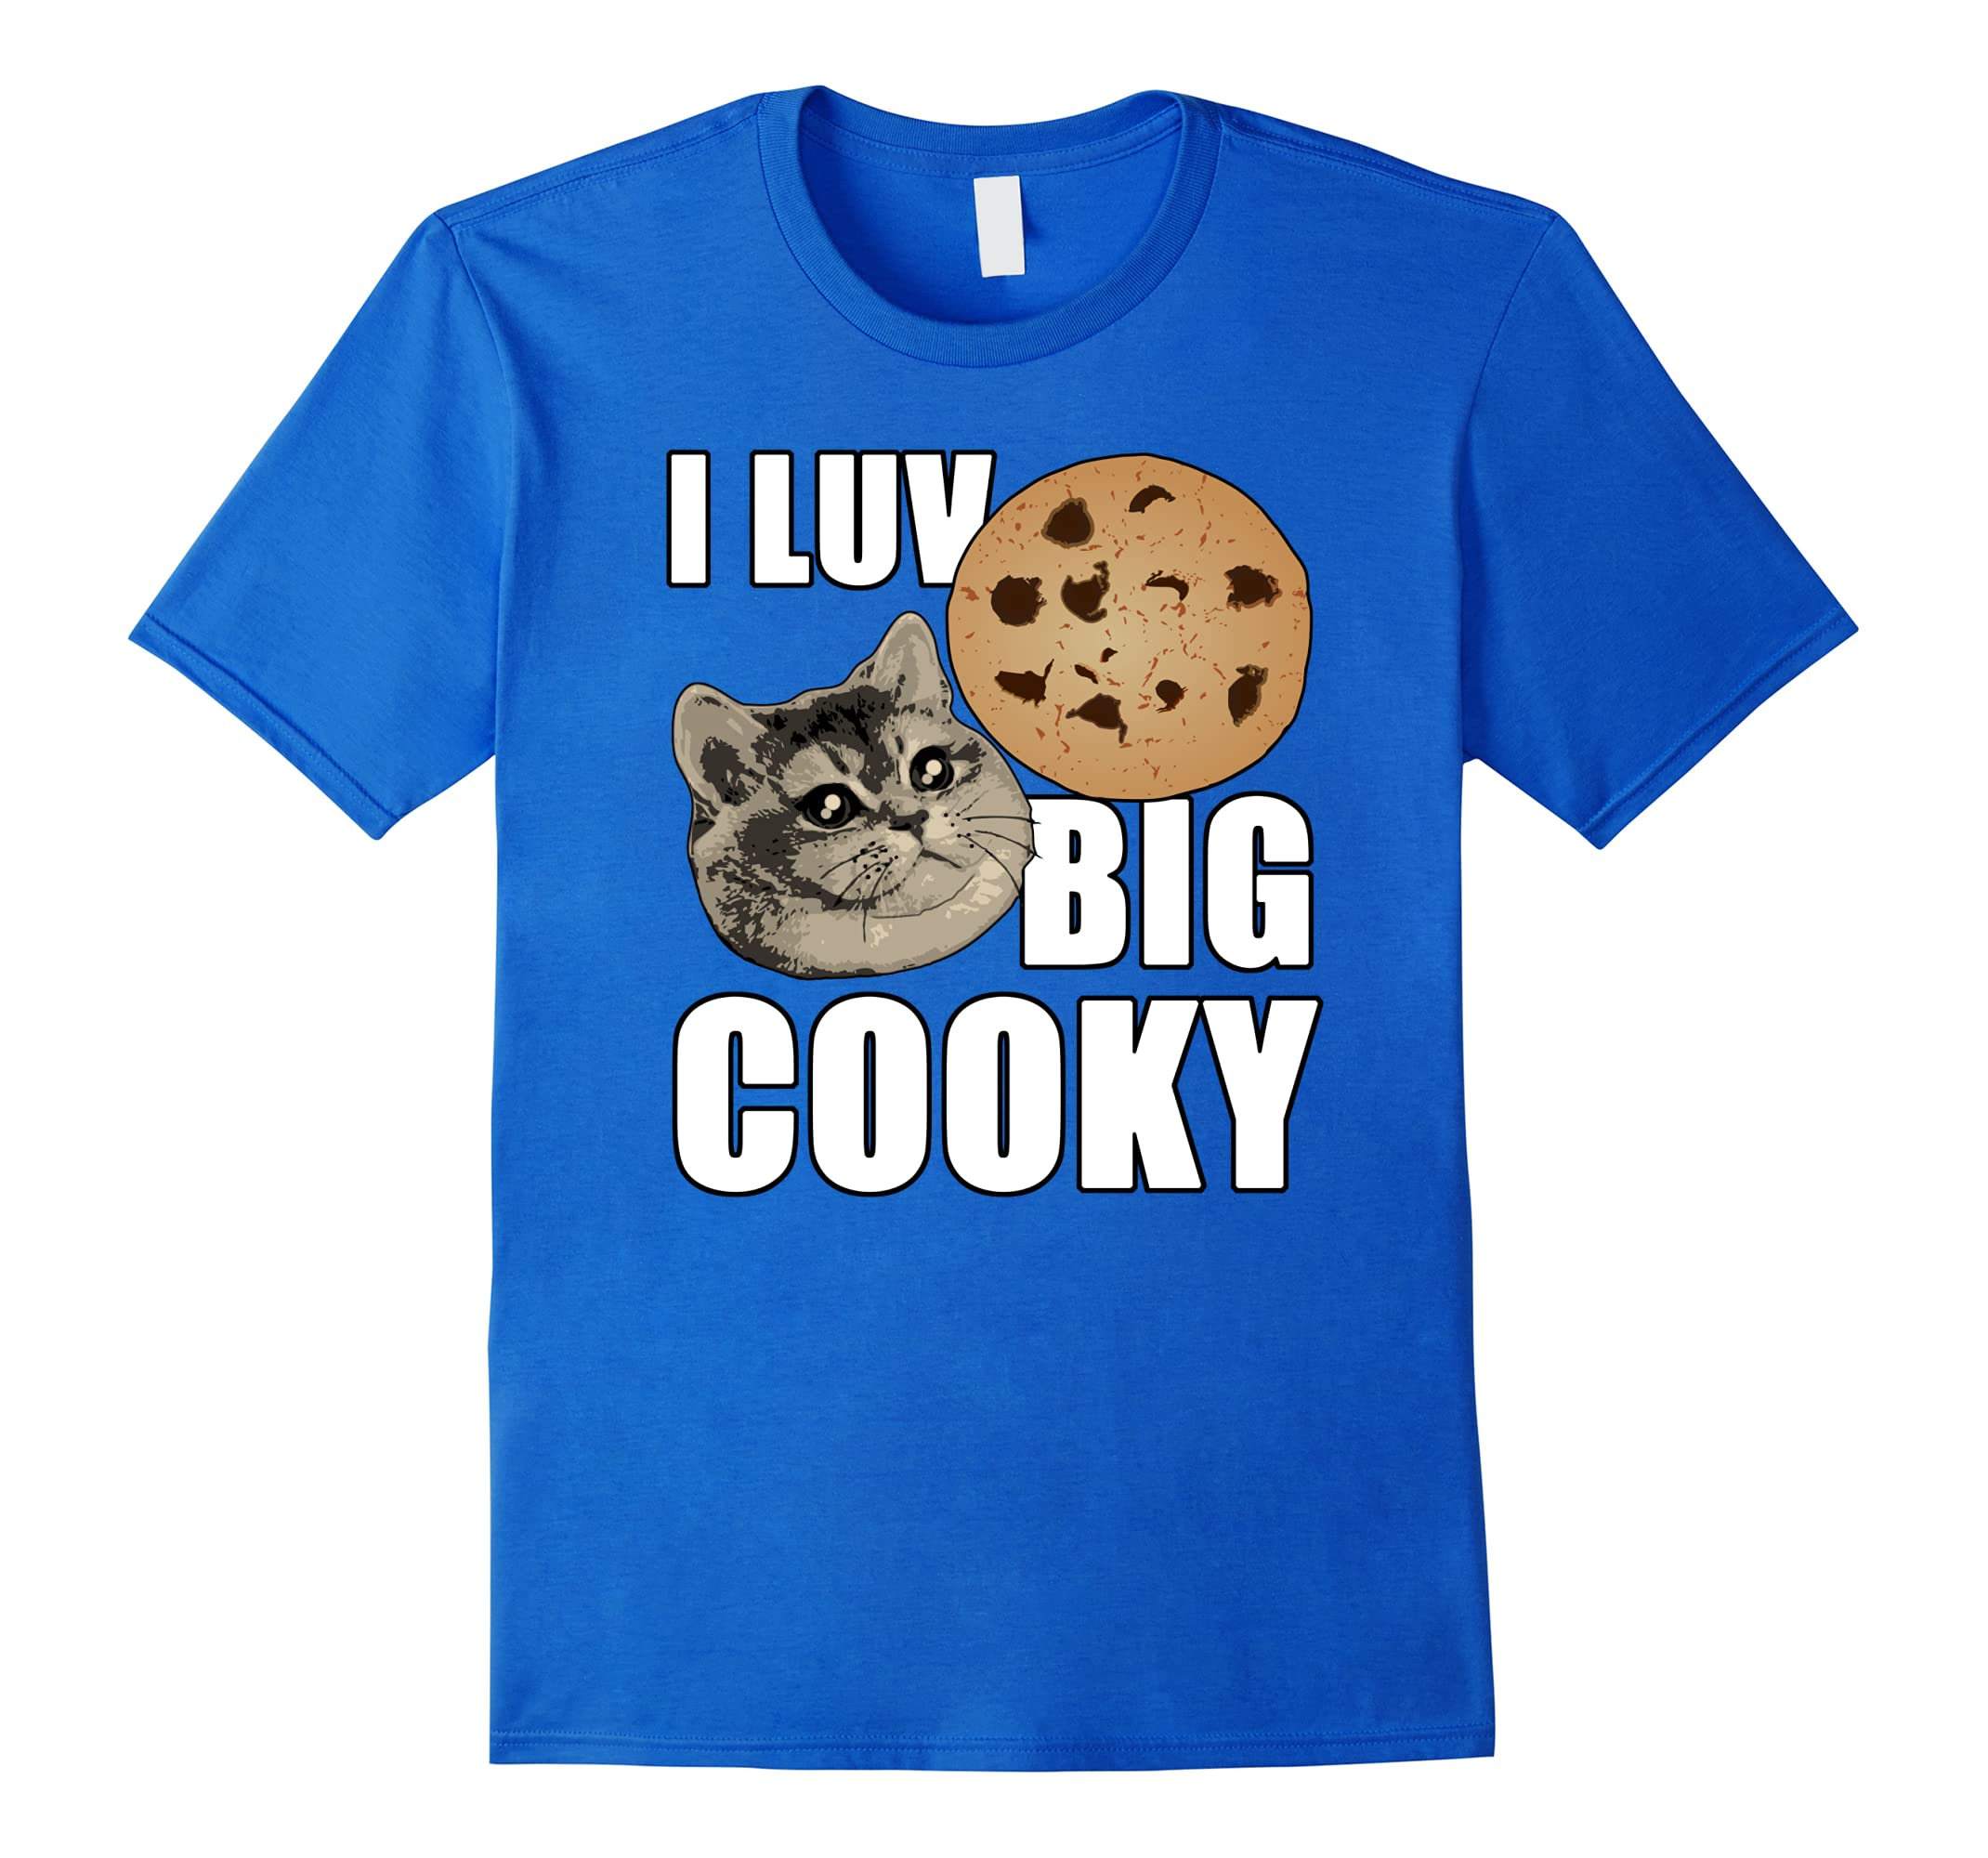 heavy breathing cat i luv big cooky treats t shirt ah my shirt one